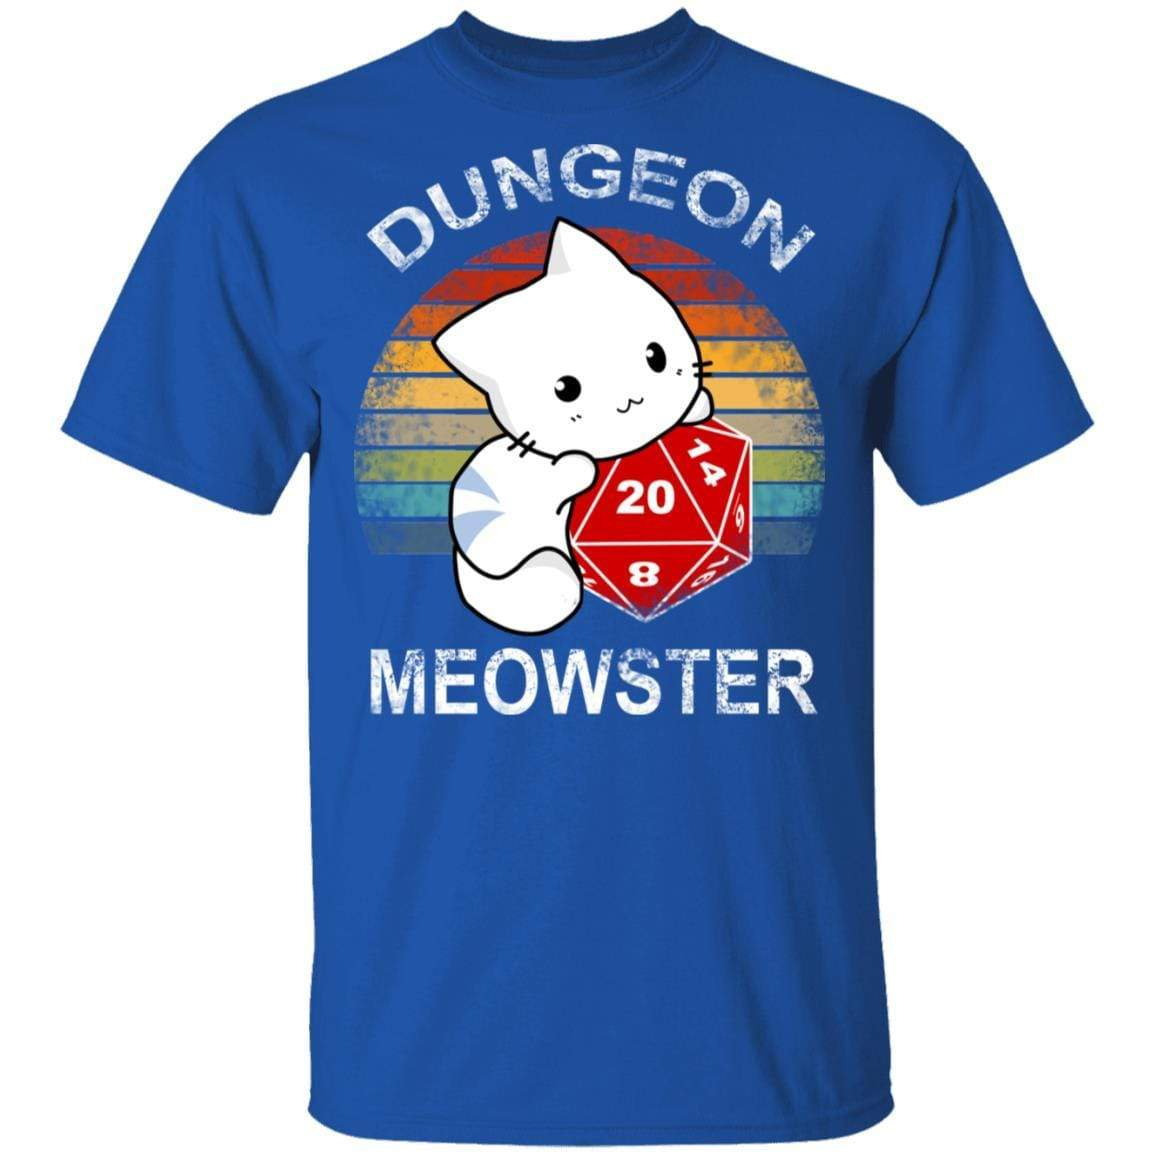 Dungeon Meowster Retro Vintage Funny Cat T-Shirts, Hoodies 1049-9971-90279036-48286 - Tee Ript